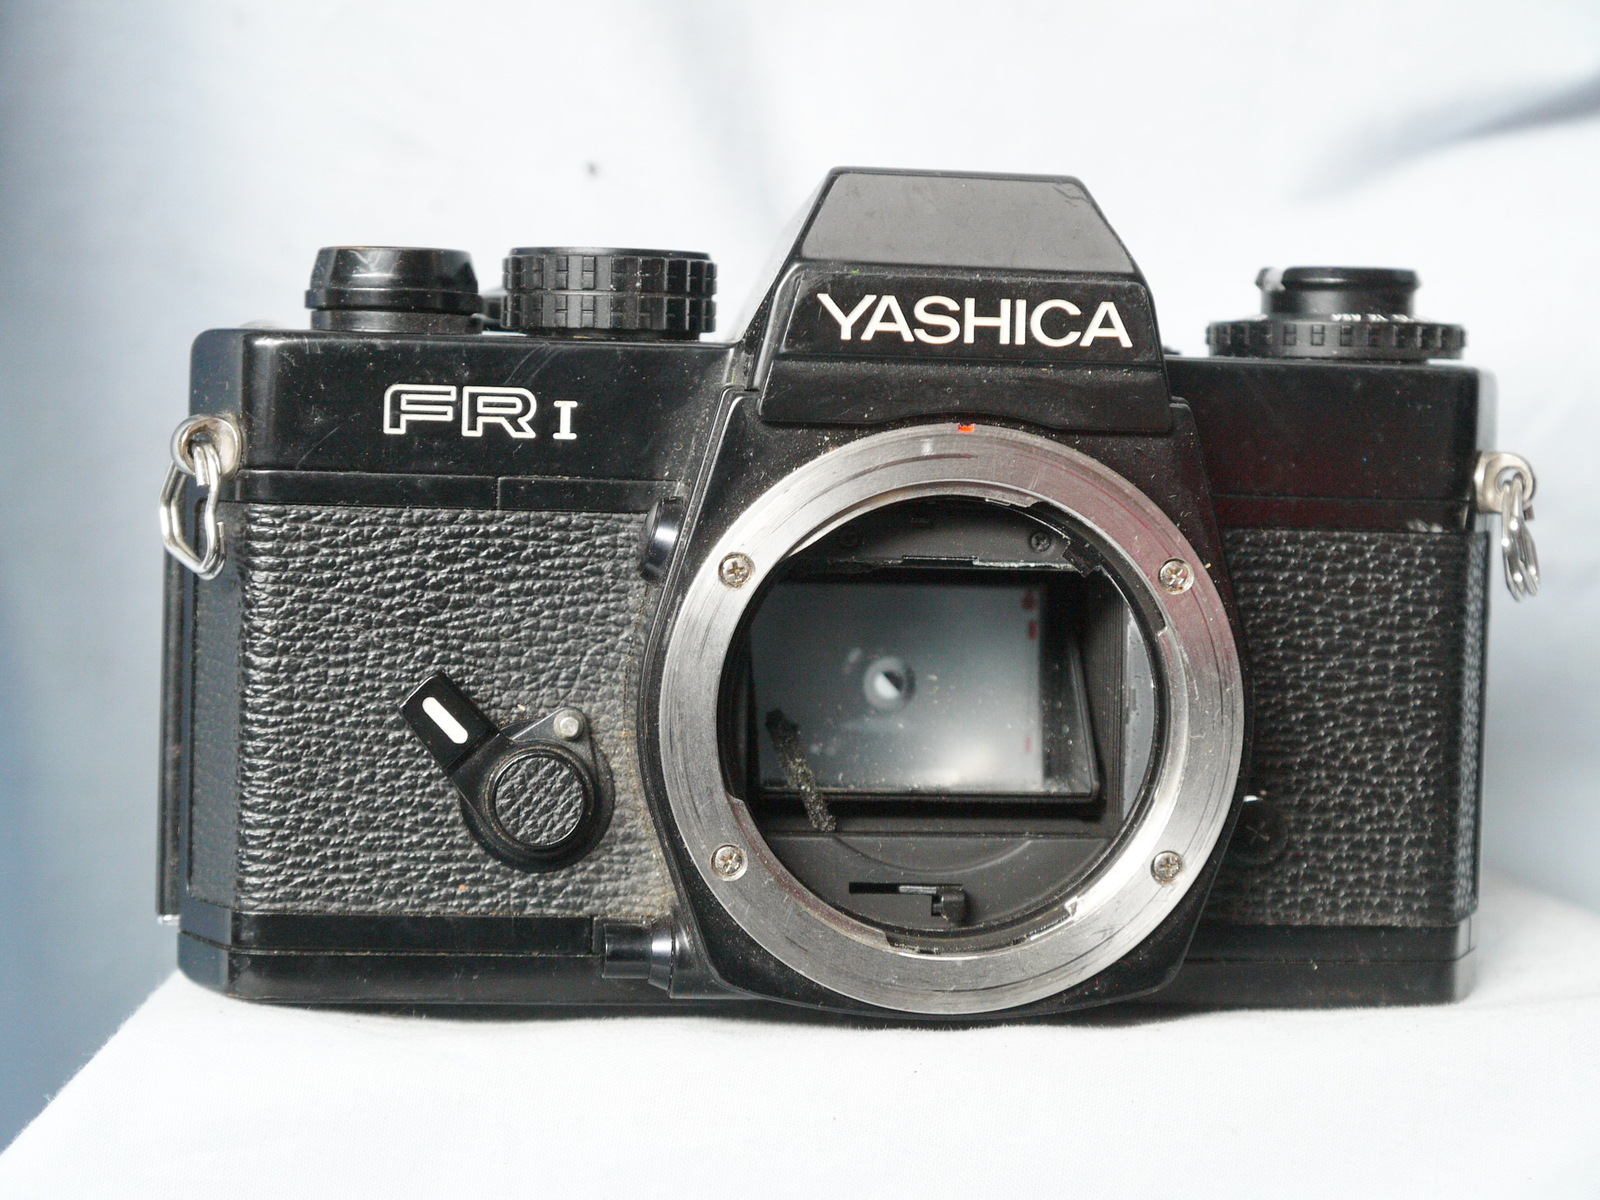 Primary image for Yashica FR1 35mm SLR Camera - Nice-